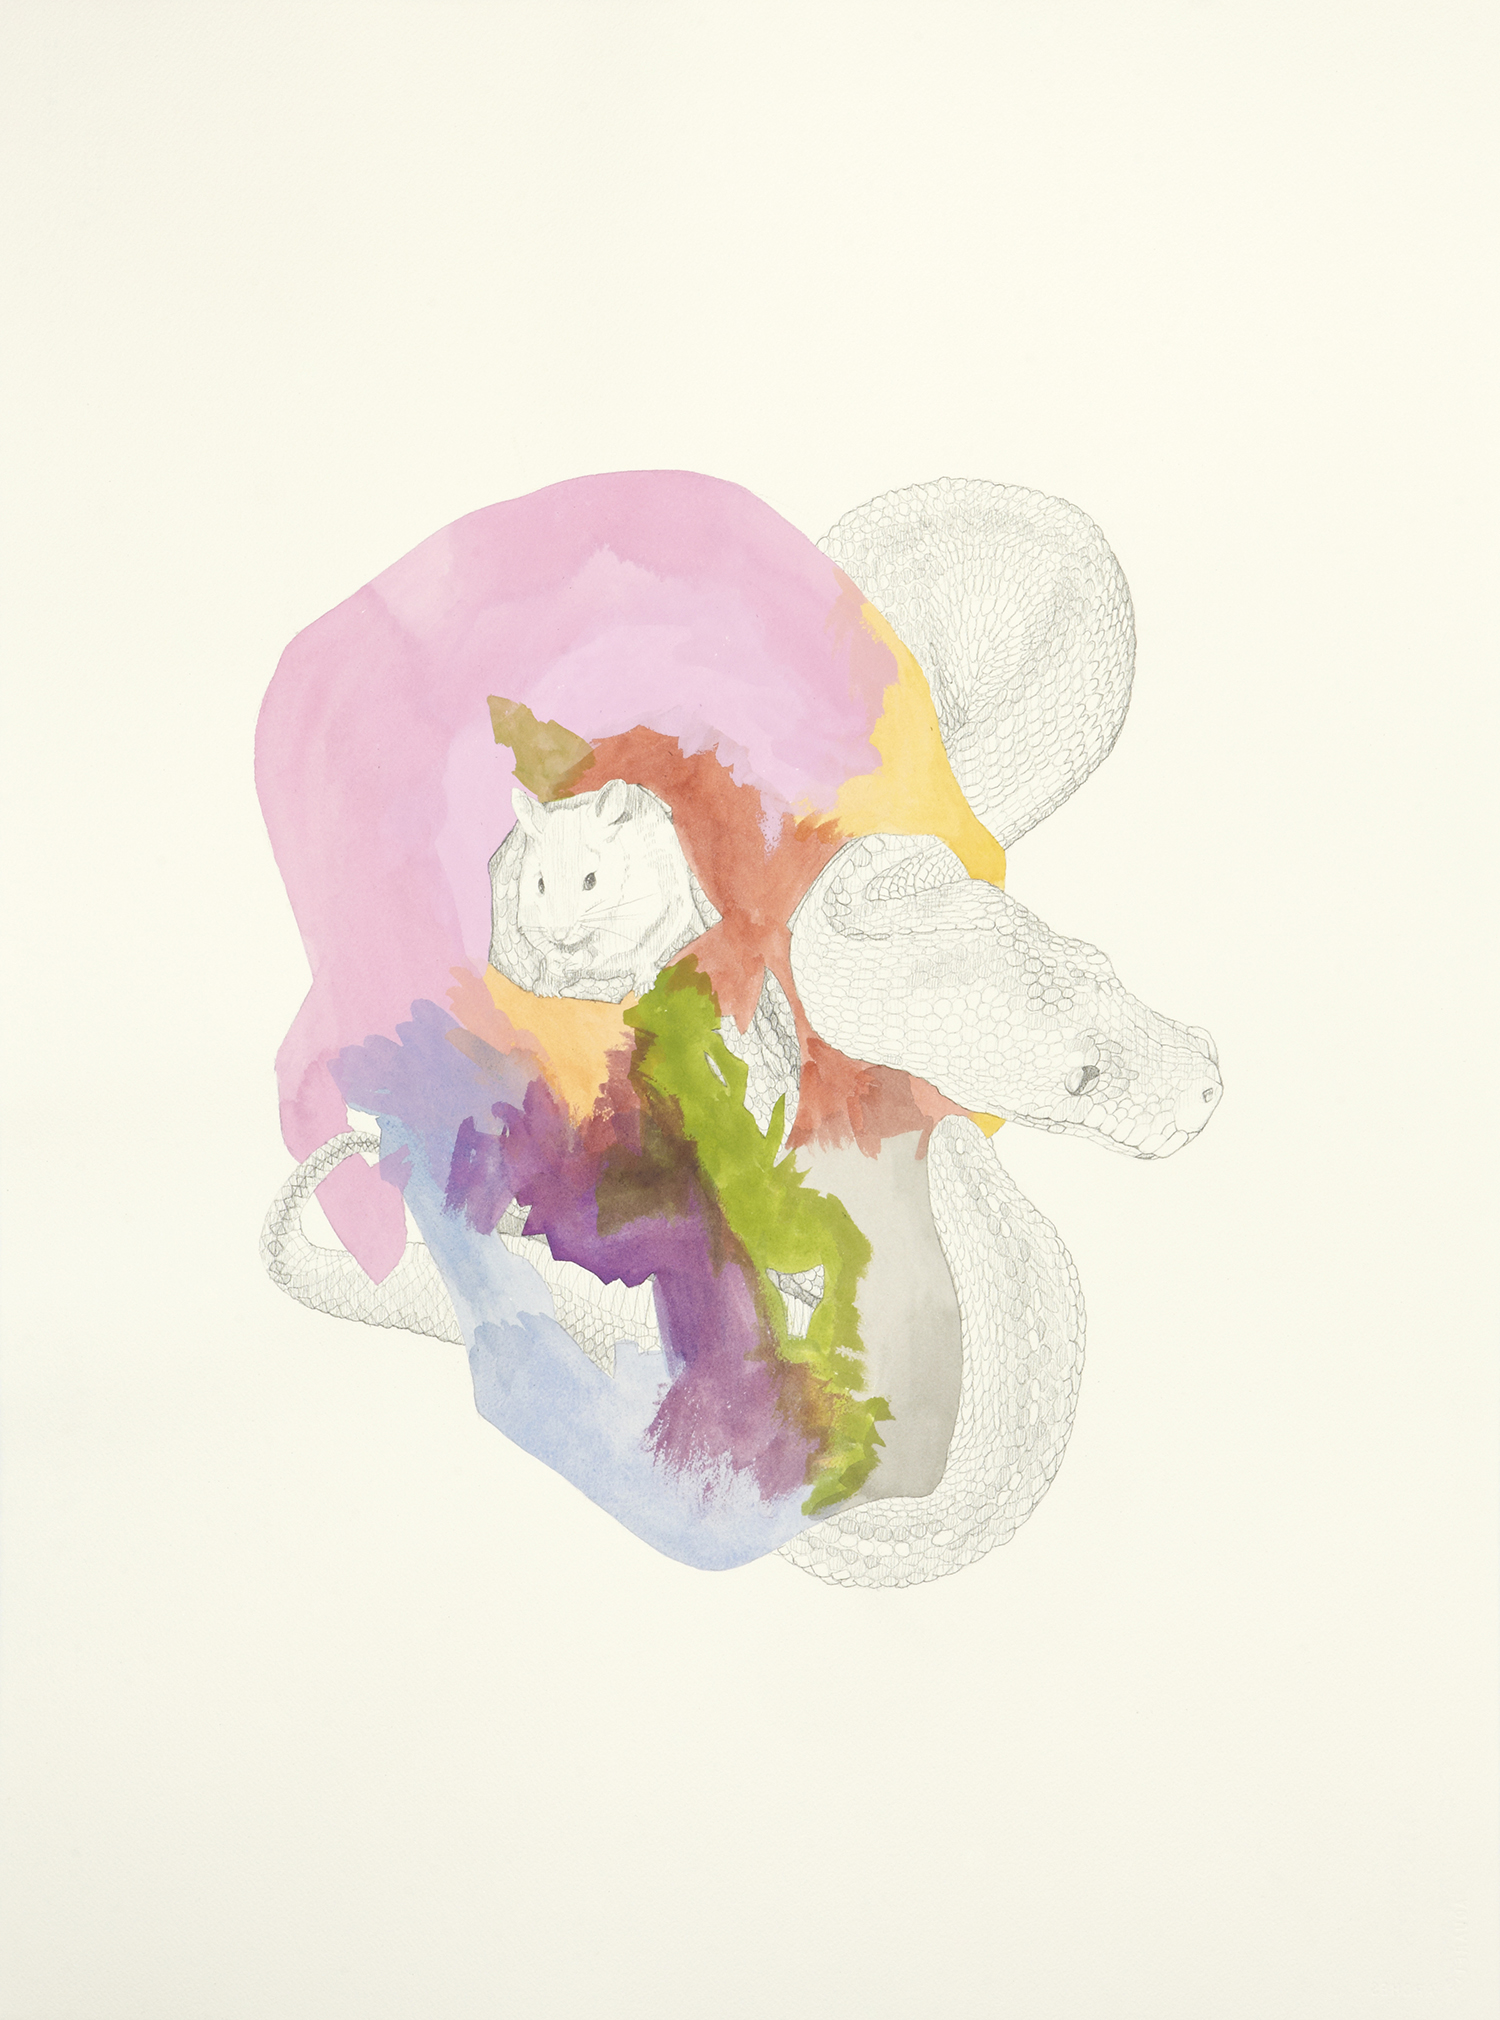 Knowledge Persists After Death, 2011, Watercolour and pencil on paper, 56.0 x 76.0 cm, Photo: Sam Scoufos